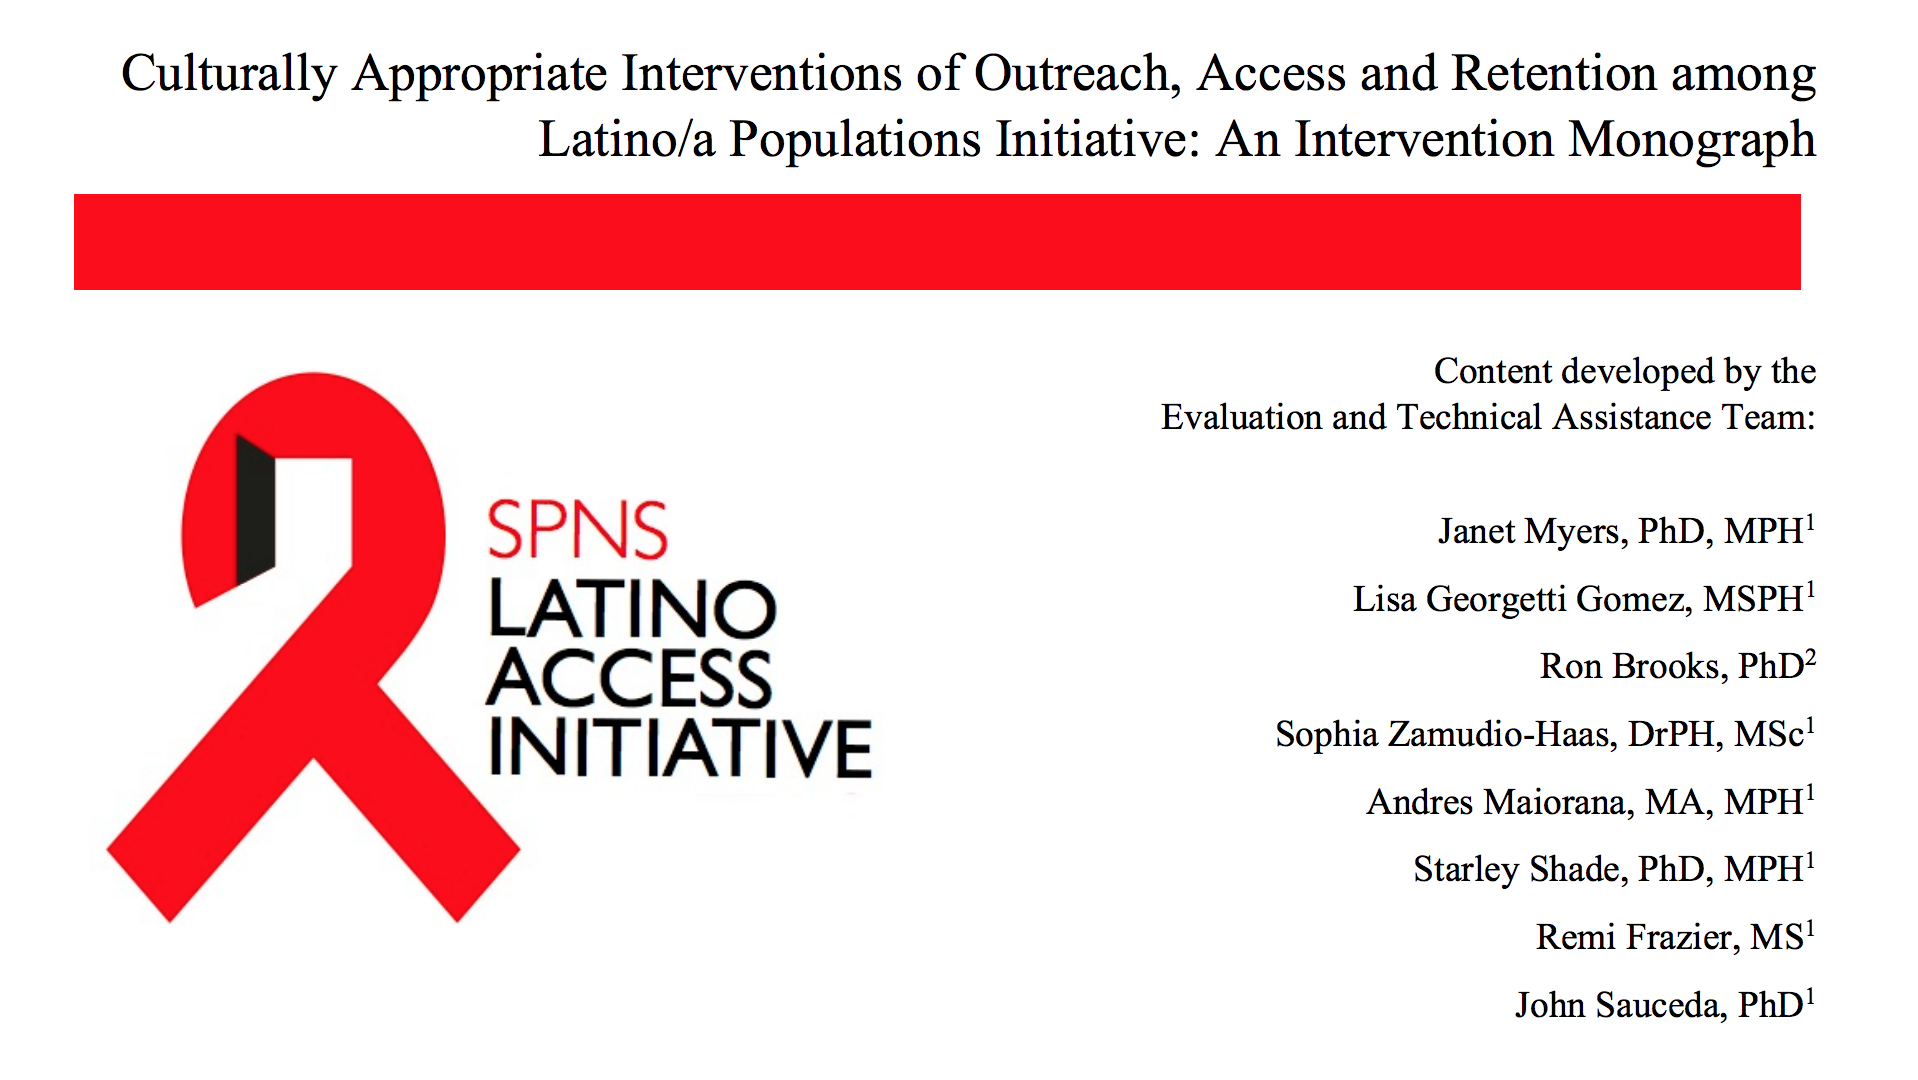 The SPNS Latino Access Initiative Logo